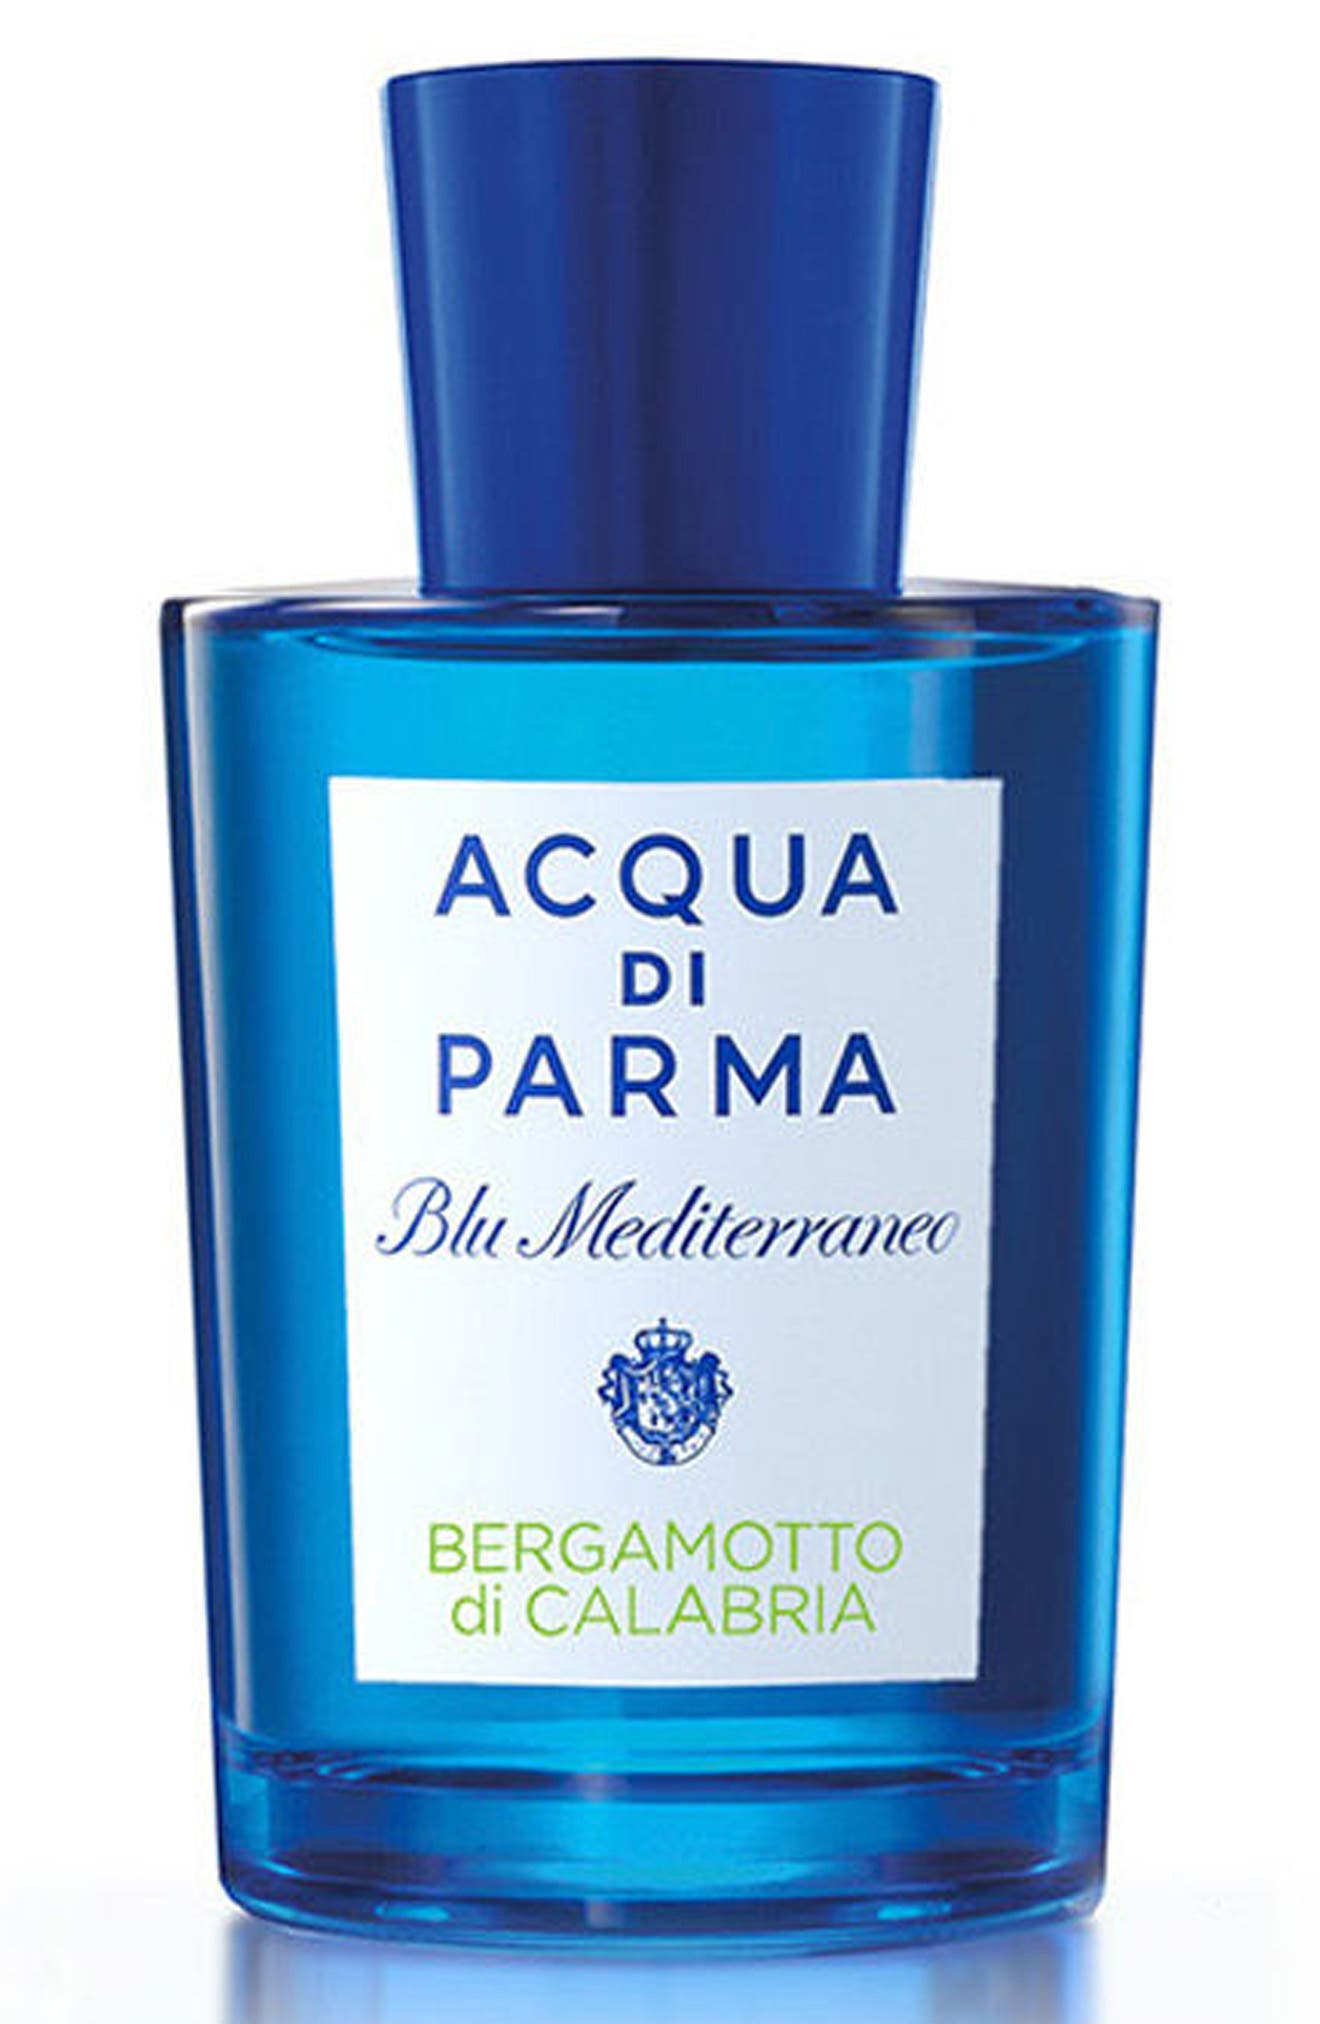 Alternate Image 1 Selected - Acqua di Parma 'Blu Mediterraneo' Bergamotto di Calabria Eau de Toilette Spray